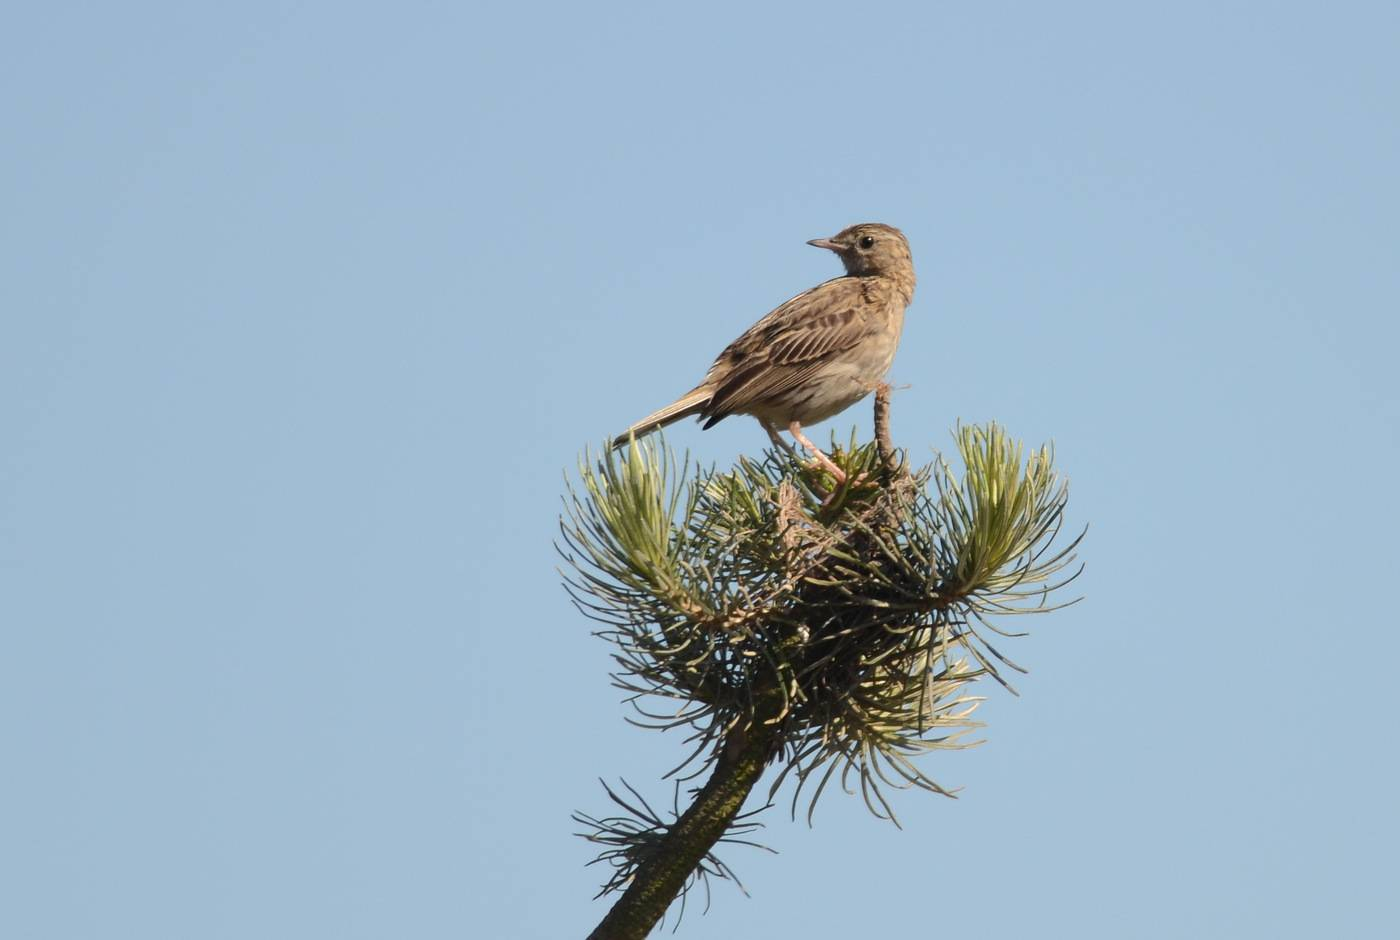 Hellmeyer's Pipit